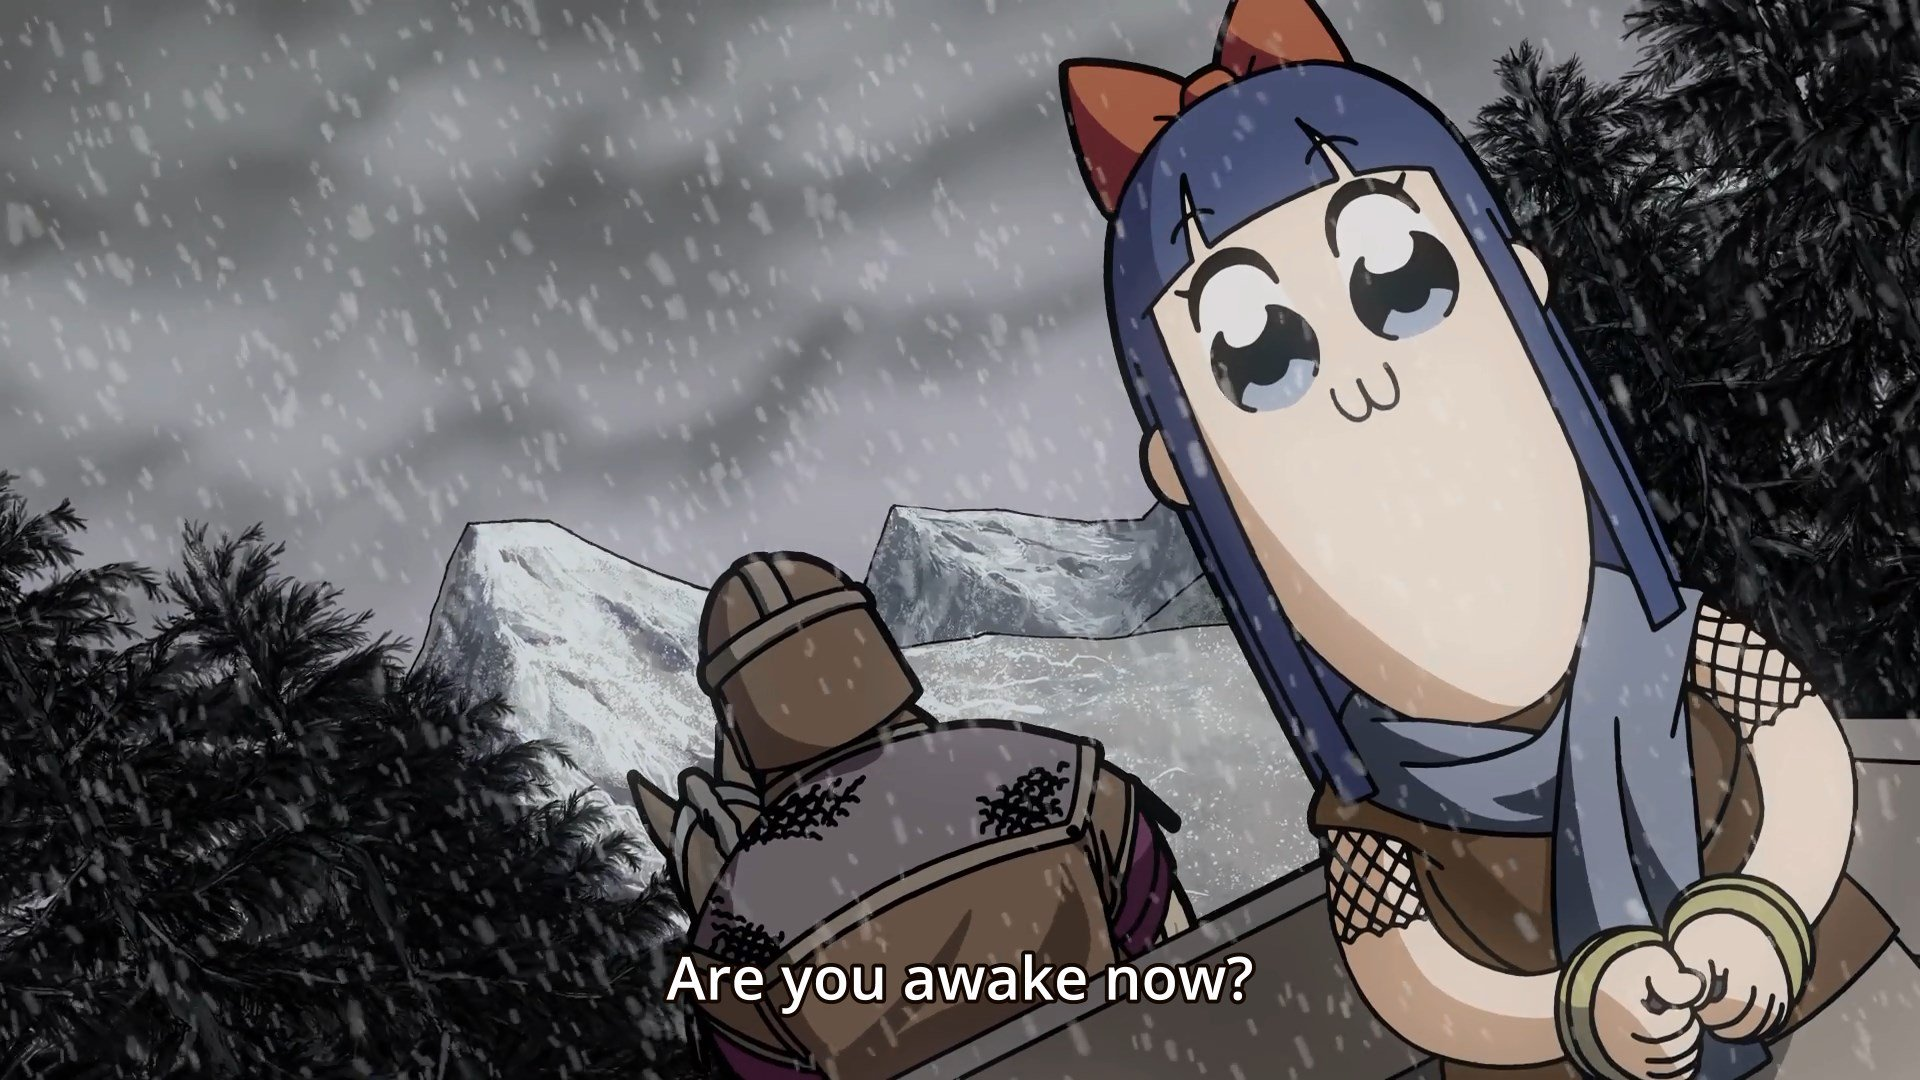 I Cant Believe Todd Howard Ported Skyrim To Anime As Well